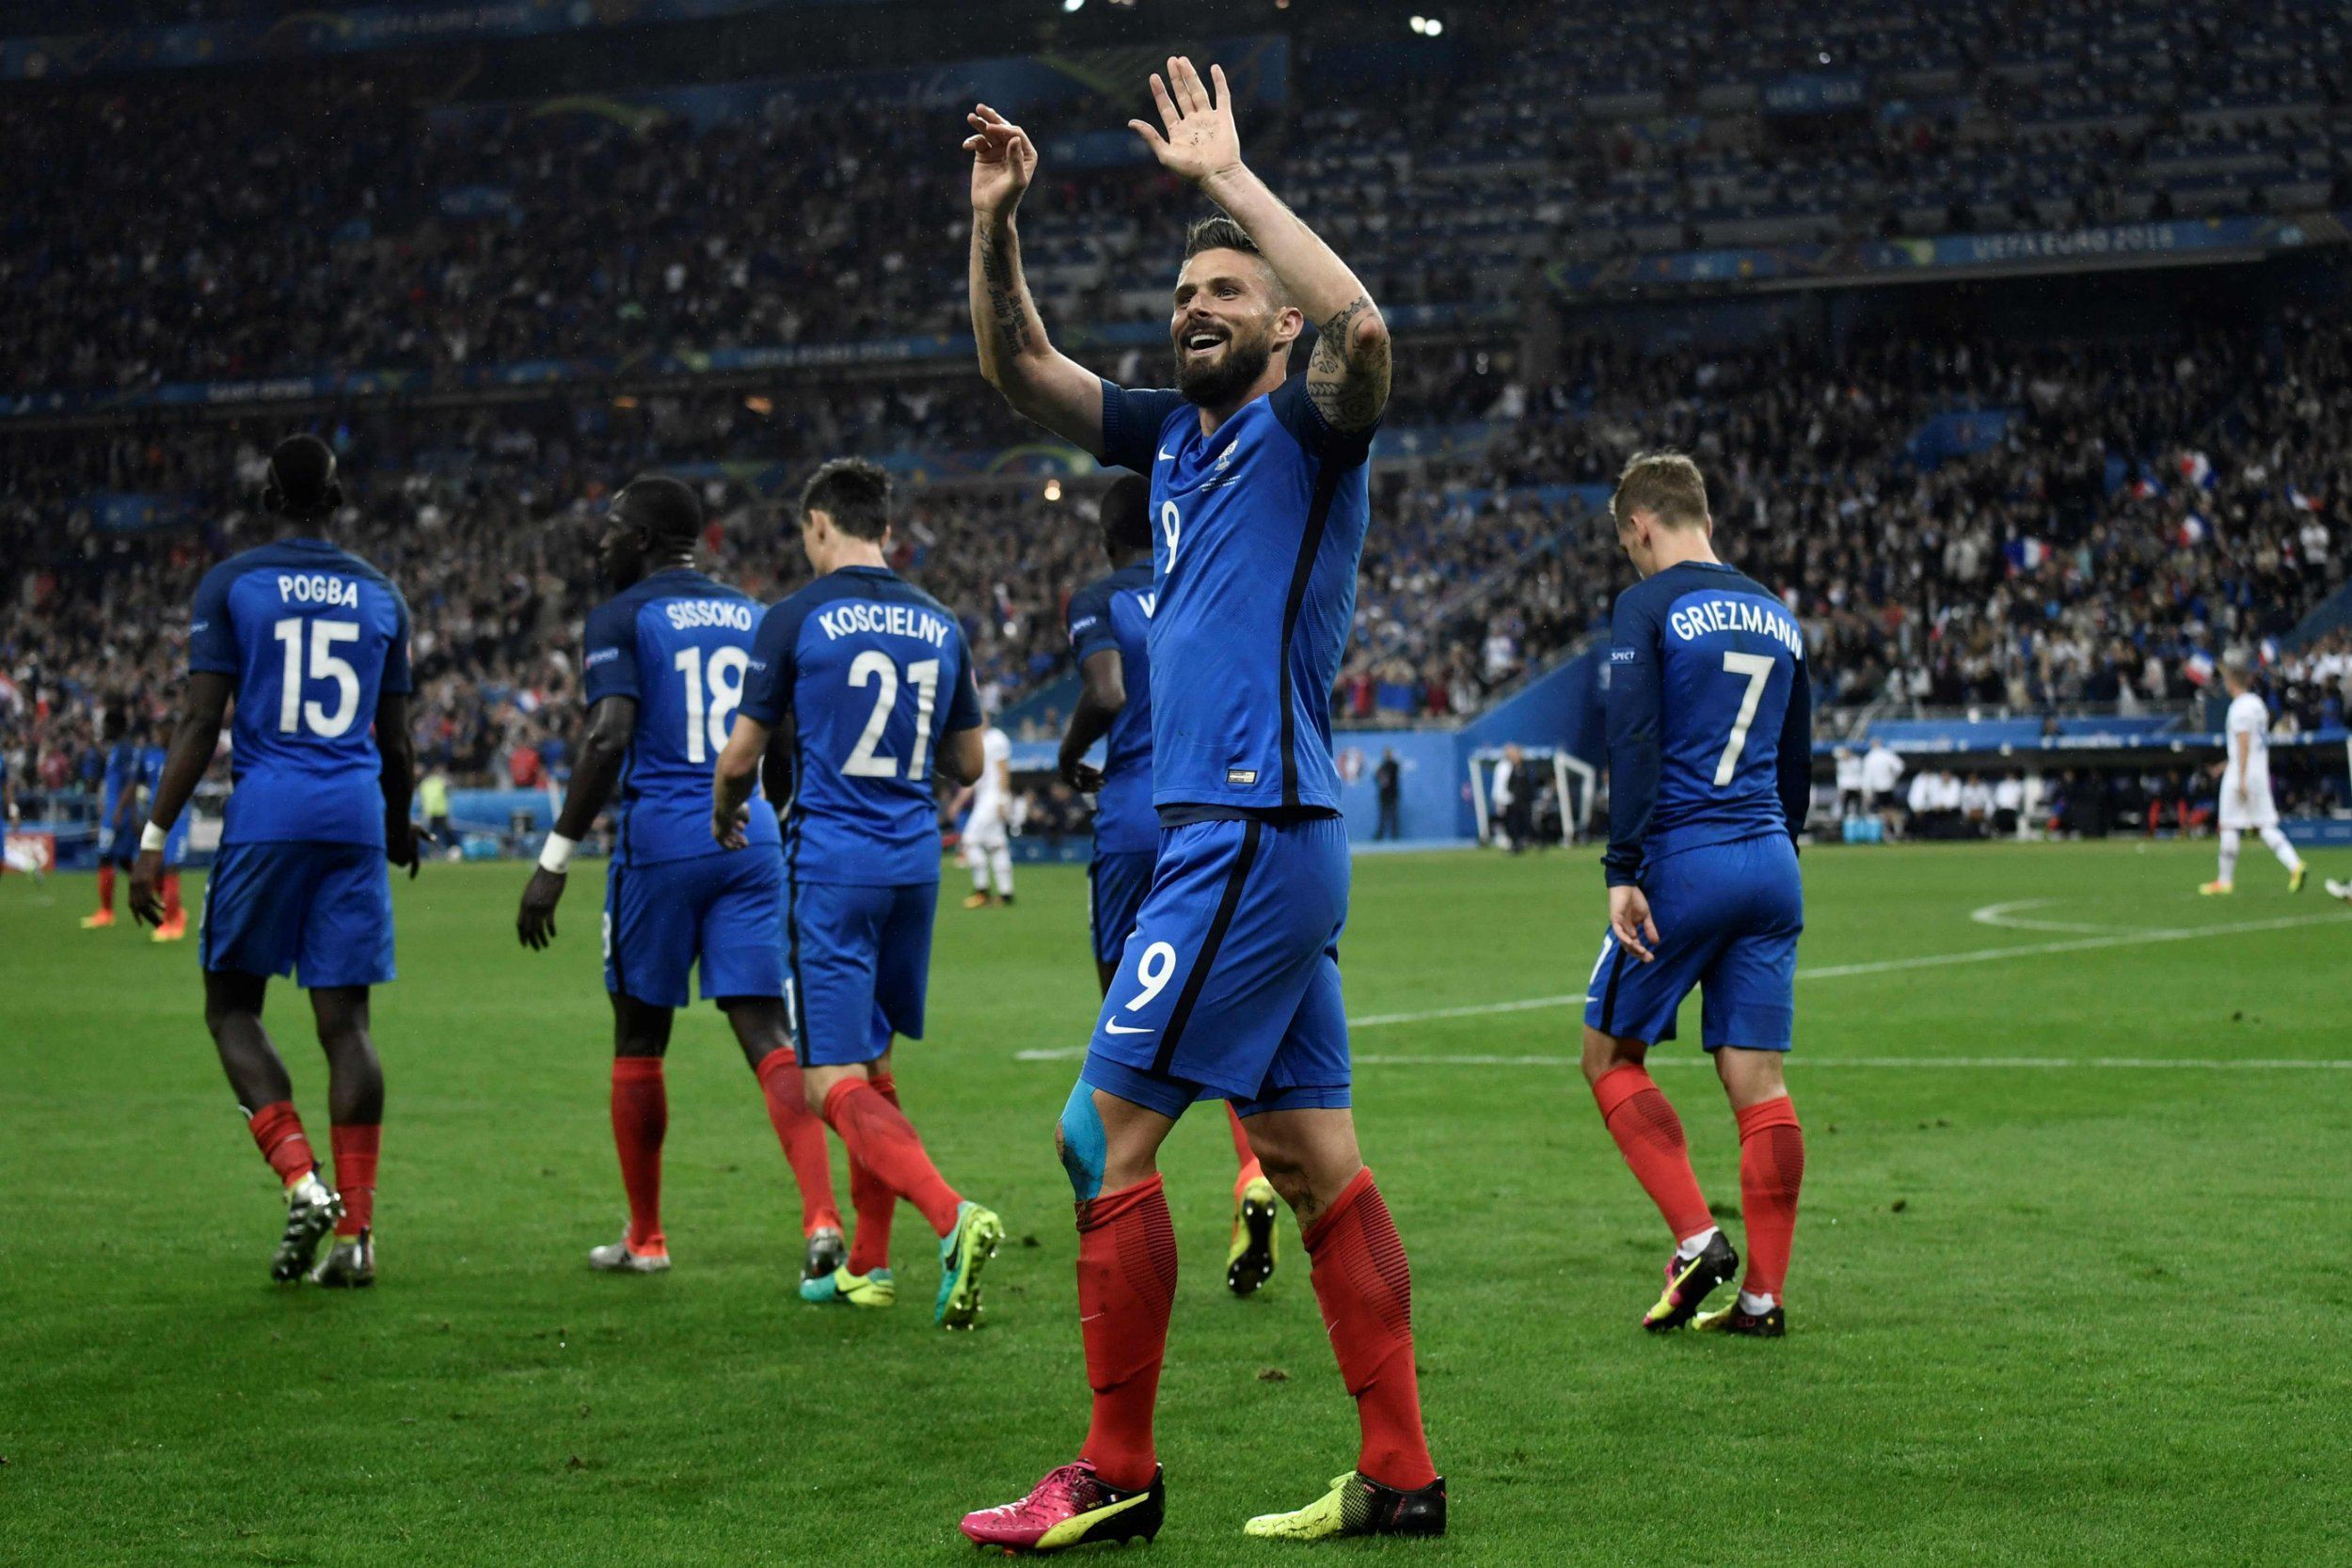 France's forward Olivier Giroud celebrates after scoring another goal during the Euro 2016 quarter-final football match between France and Iceland at the Stade de France in Saint-Denis, near Paris, on July 3, 2016. / AFP PHOTO / PHILIPPE LOPEZPHILIPPE LOPEZ/AFP/Getty Images